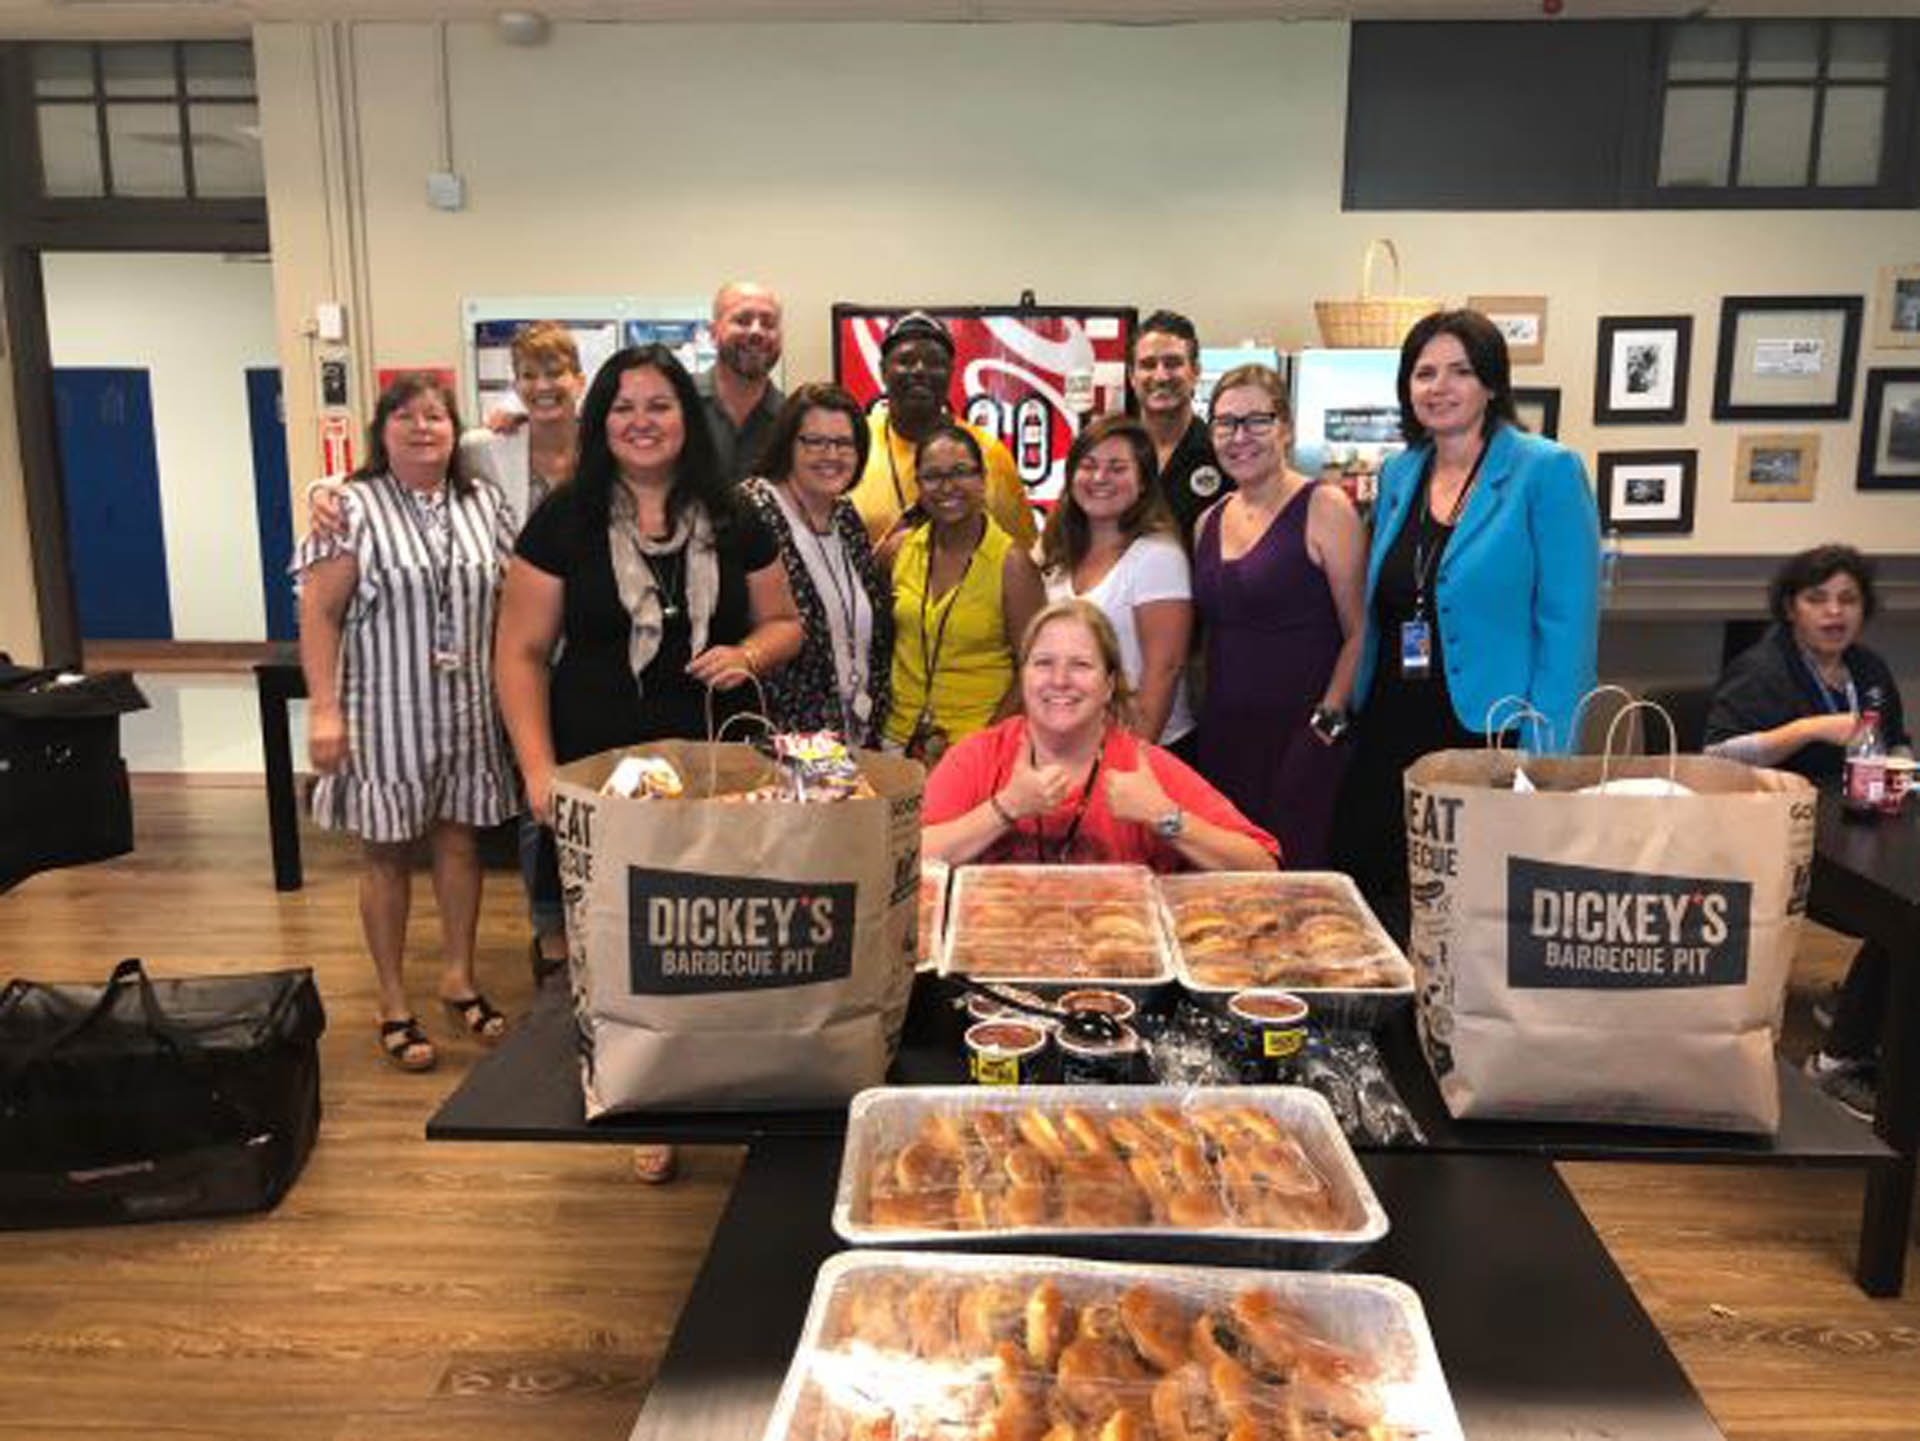 Dickey's Barbecue Pit Serves Up Lunch for Teachers